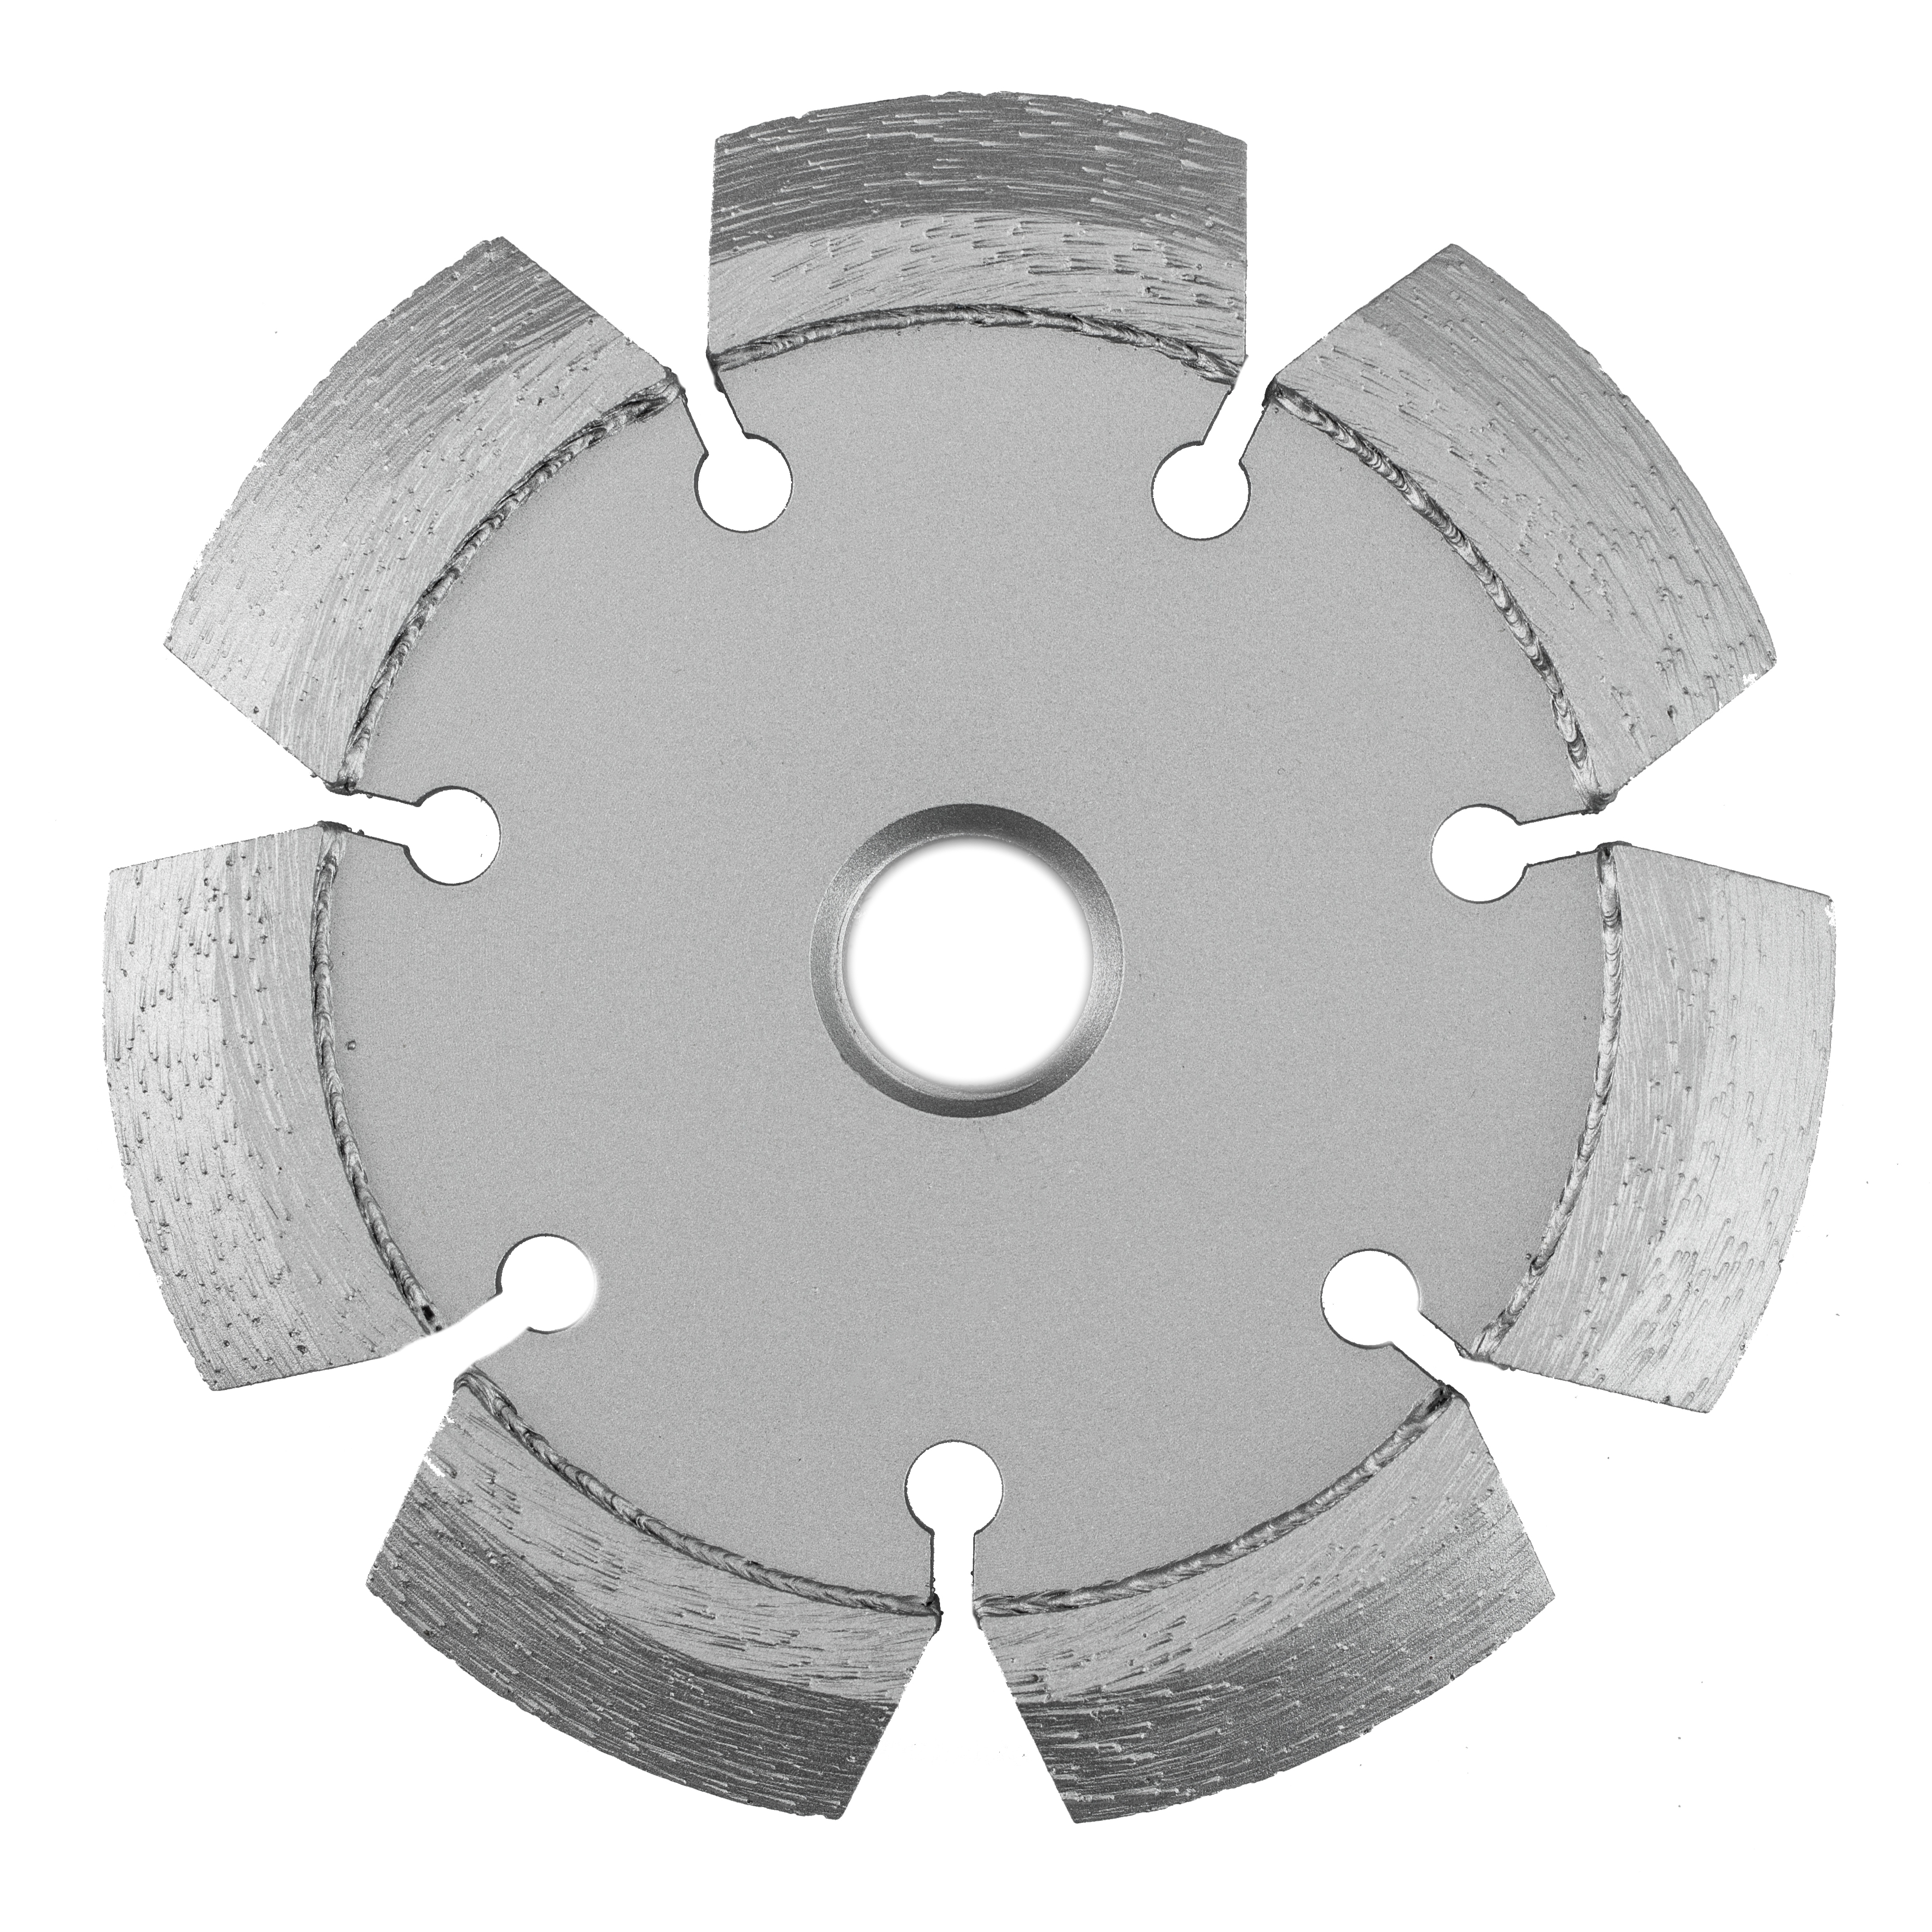 Crack Chaser Blade with V-Shaped Segment